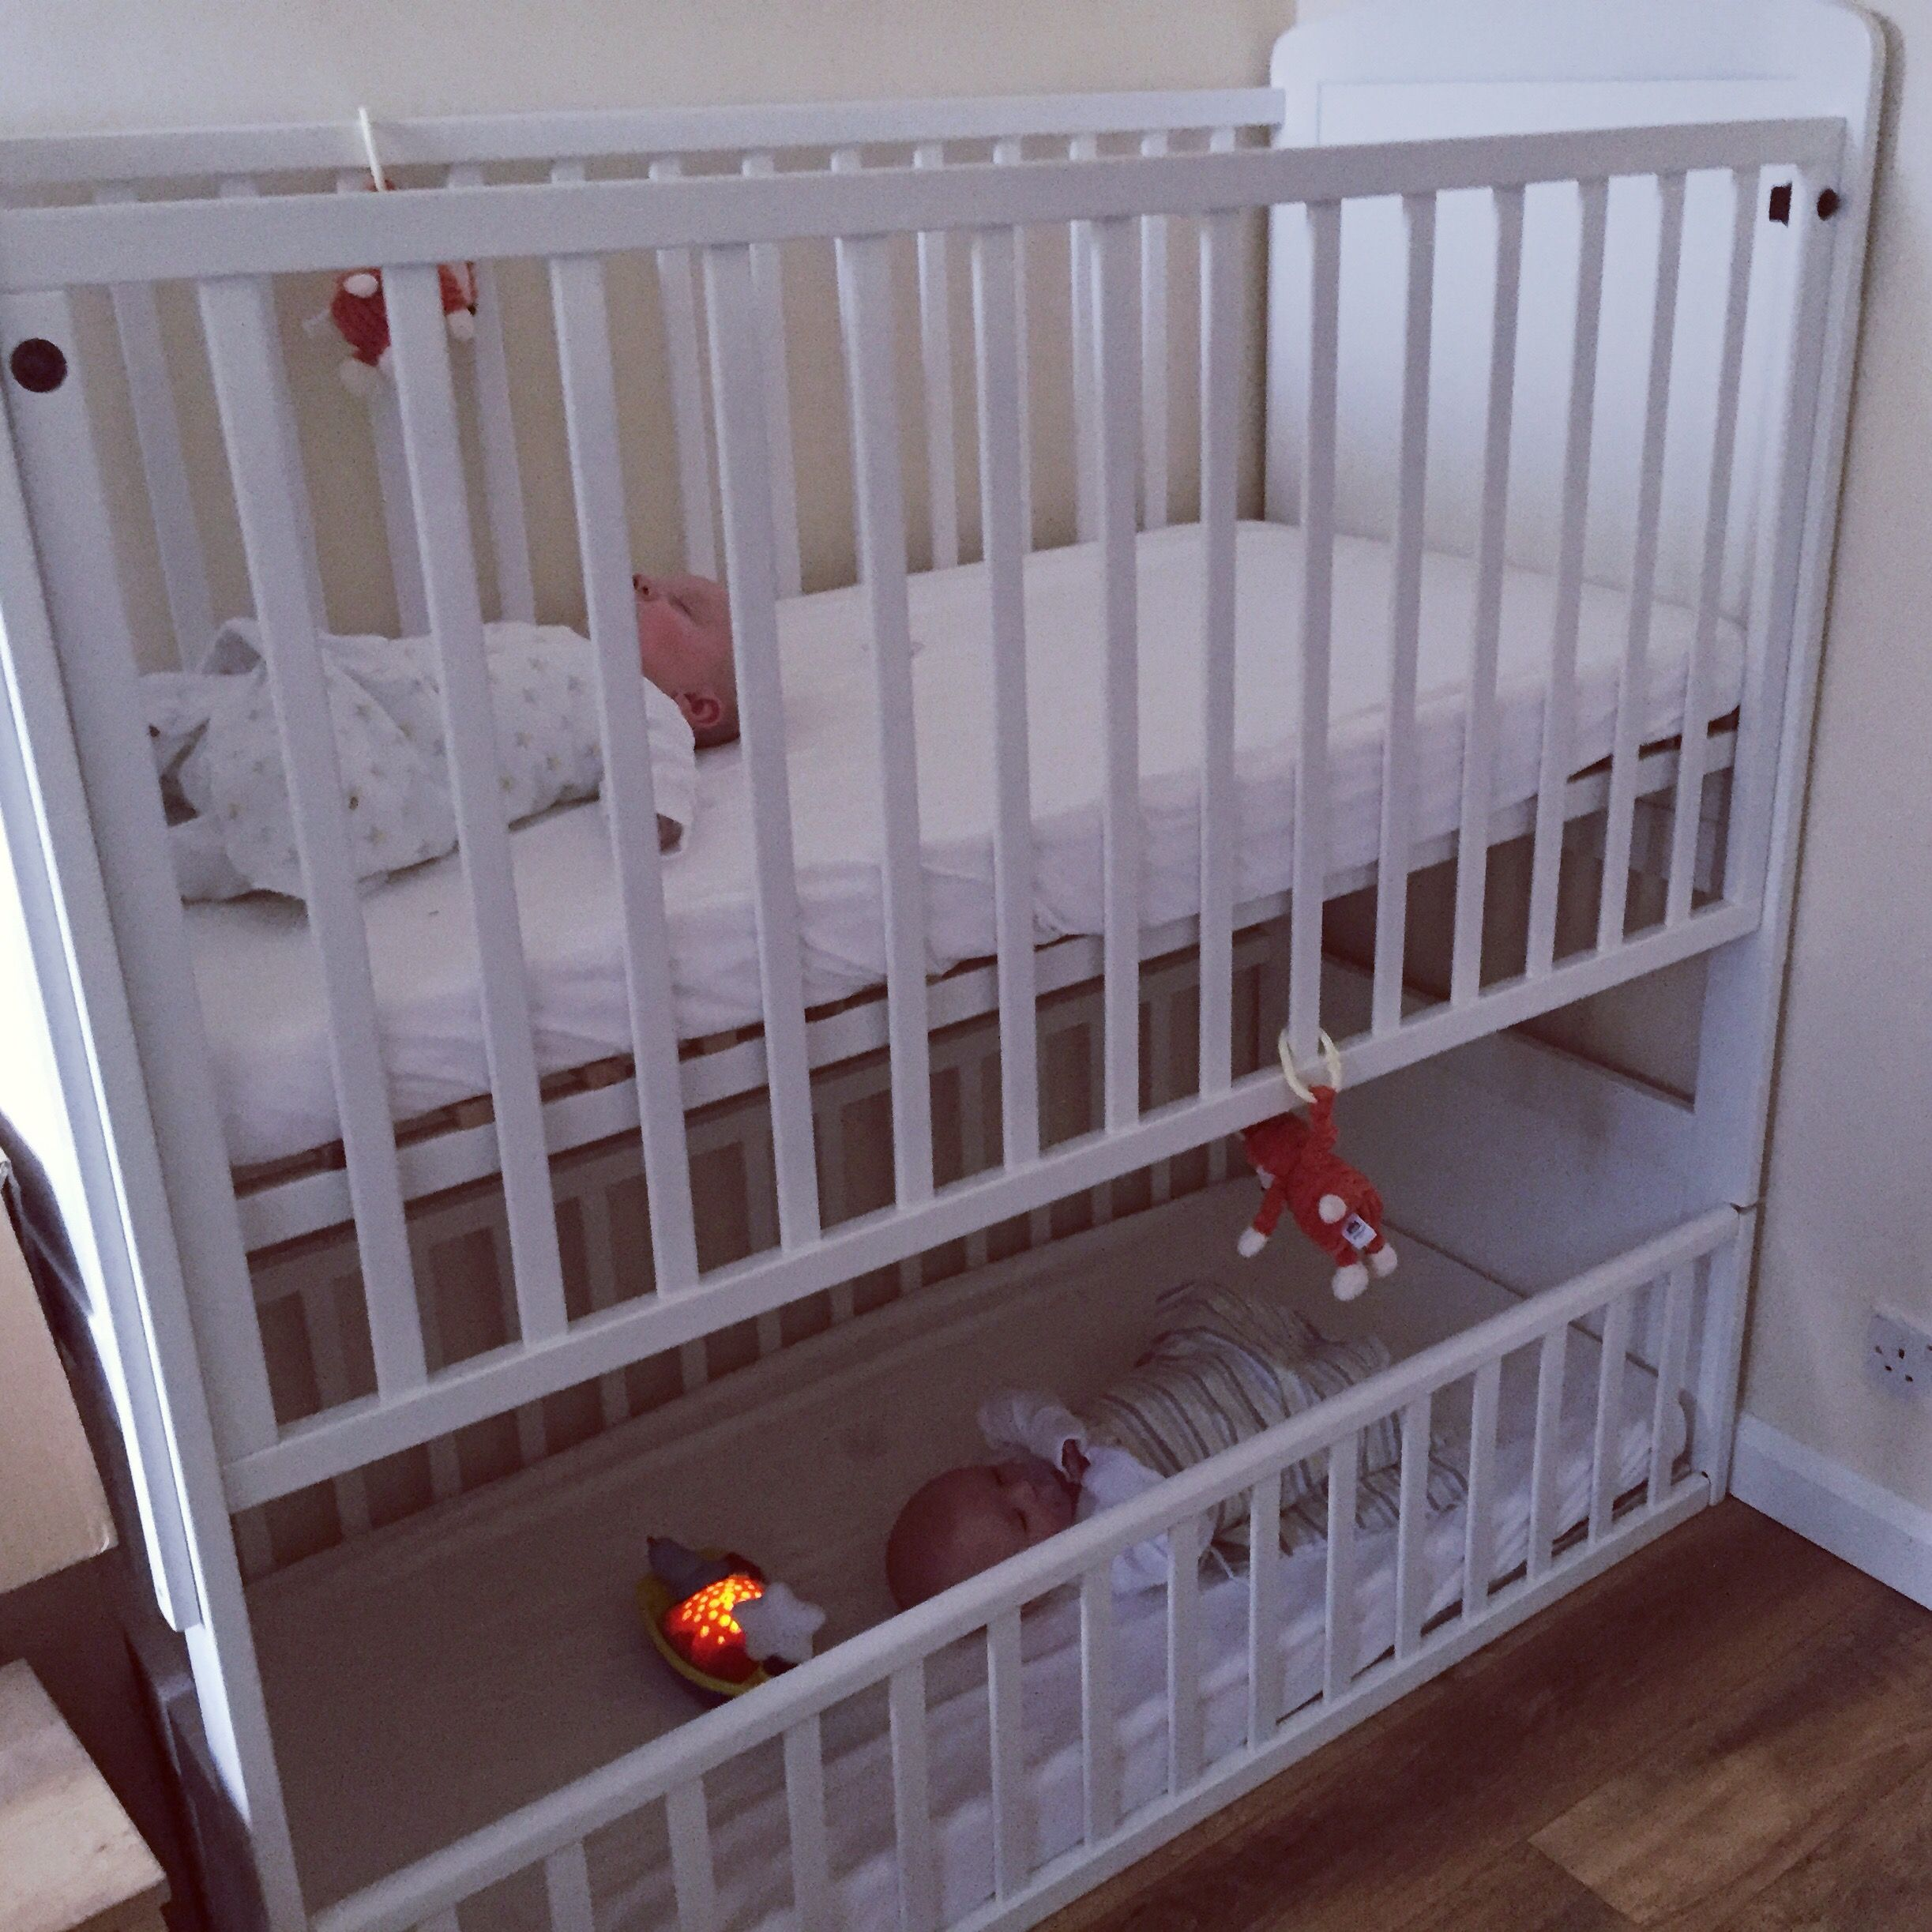 A Bunk Cot For Twins Or Siblings Close In Age Perfect If